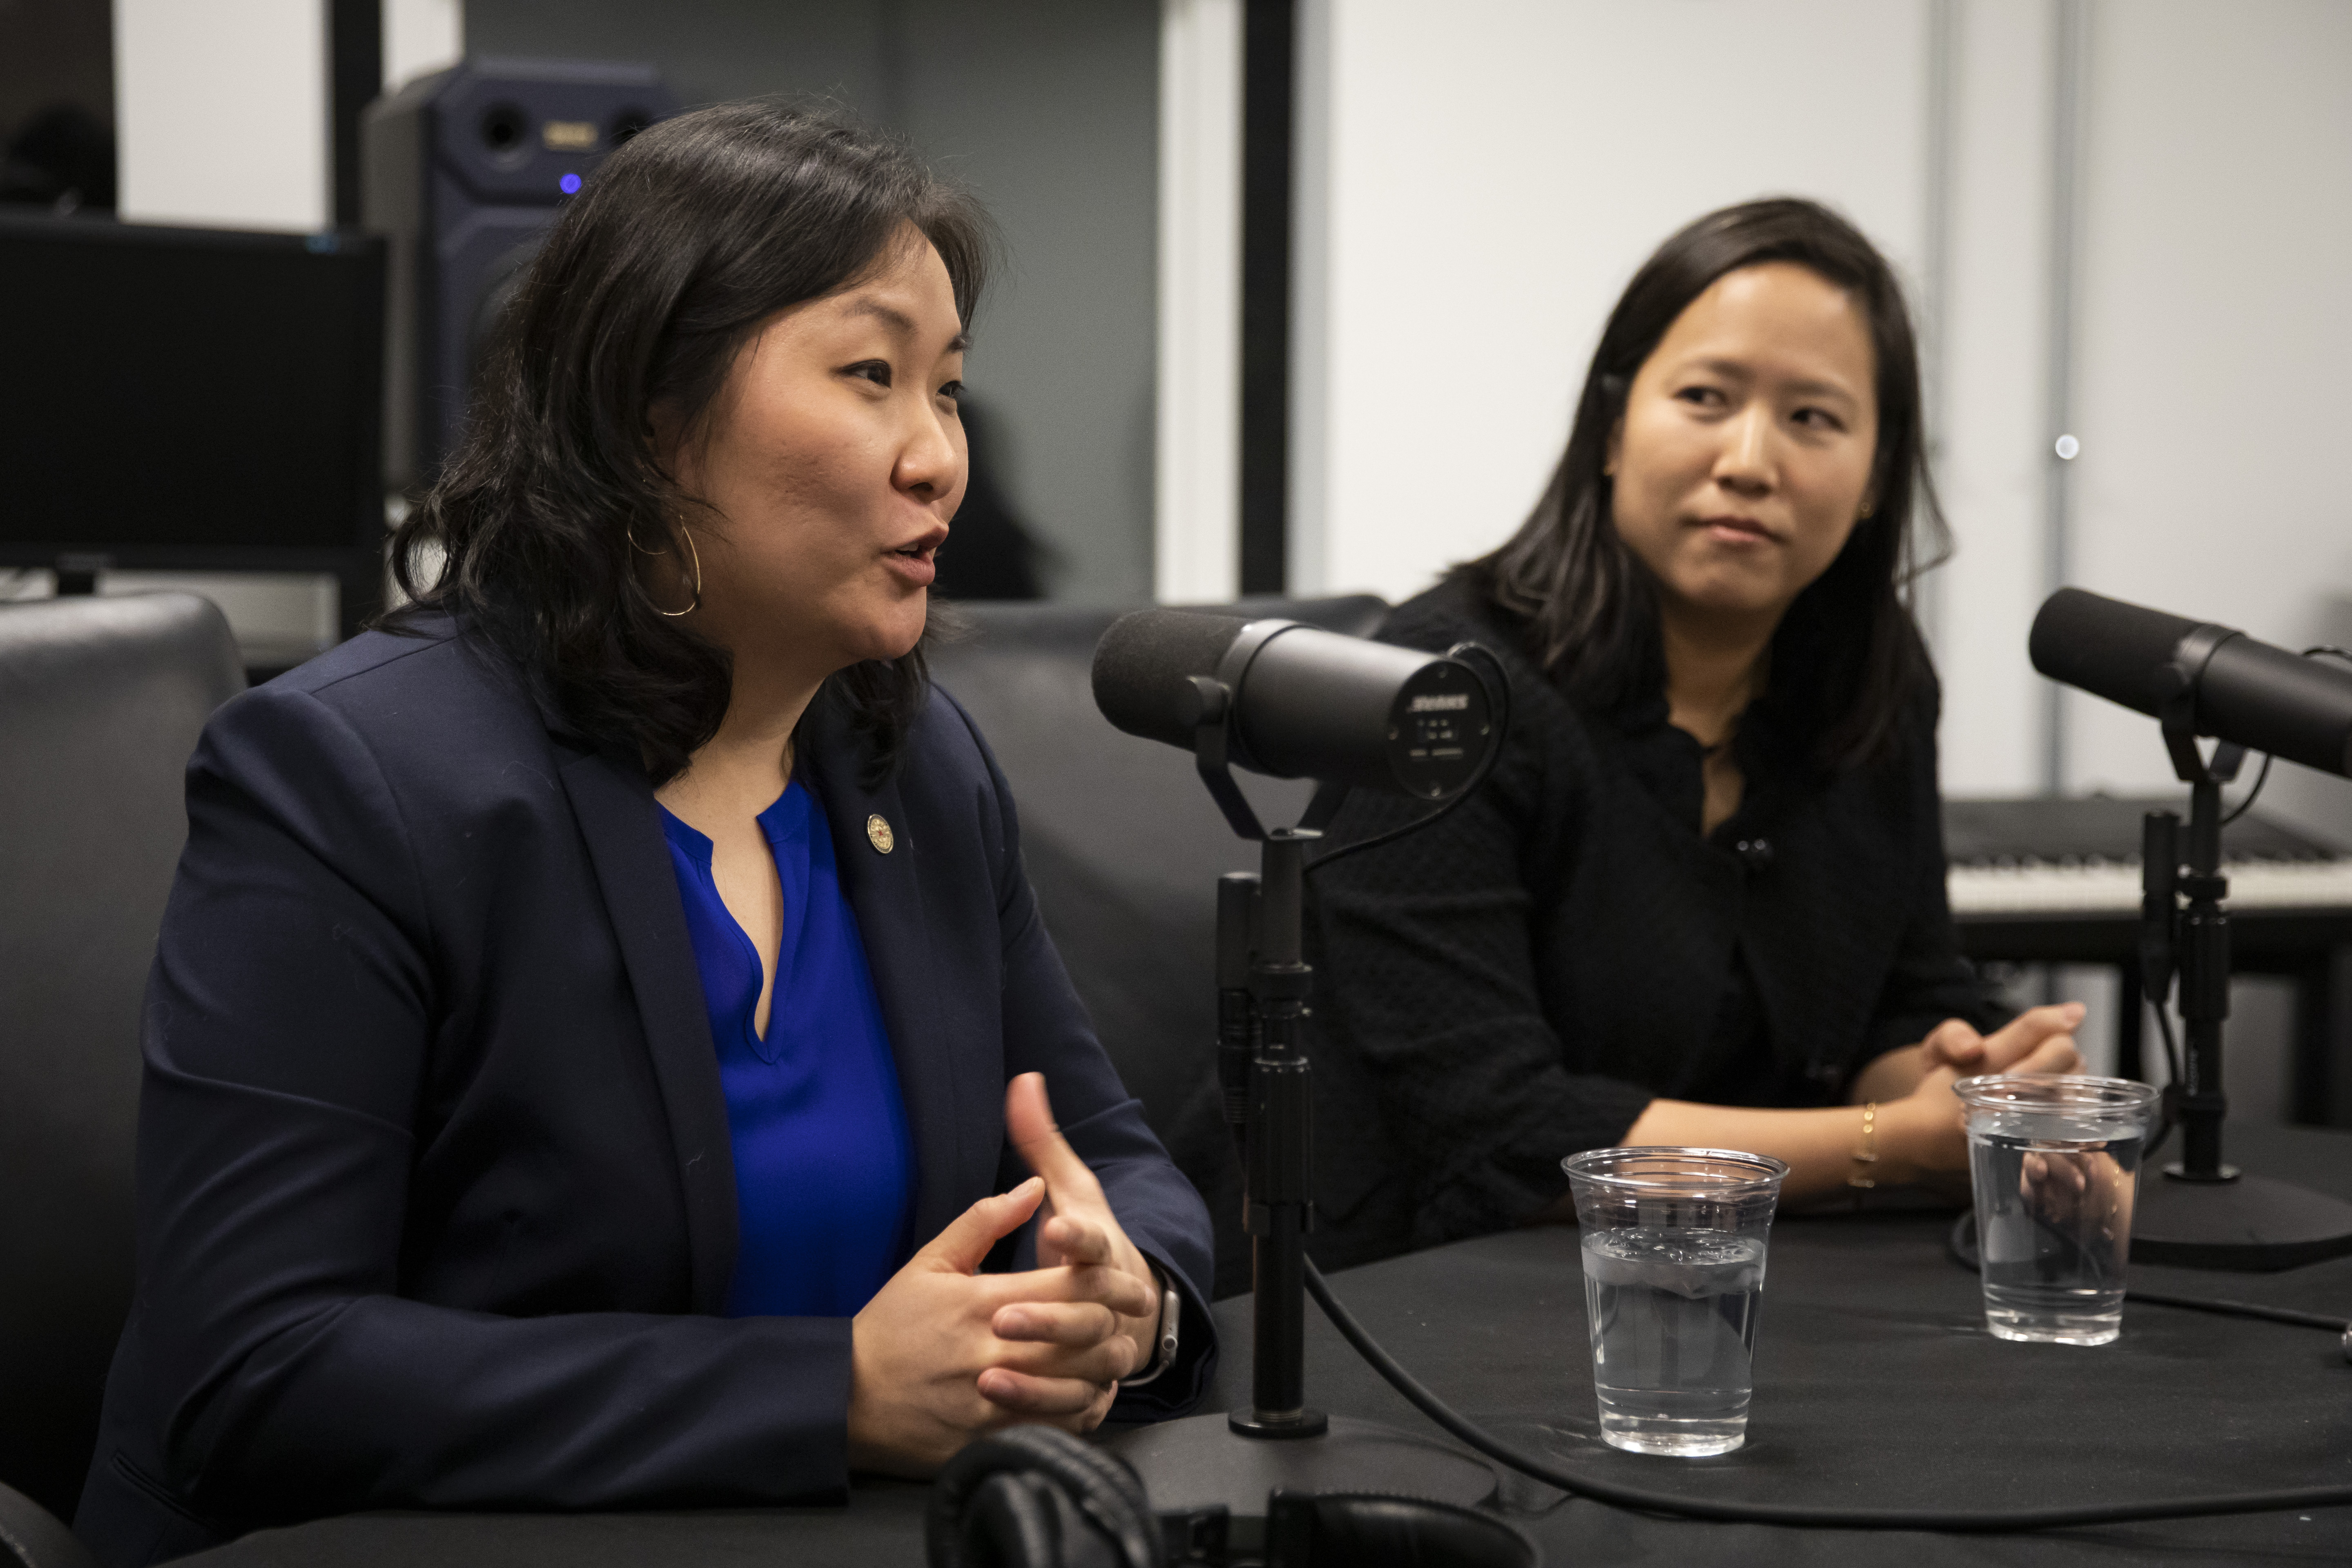 The city's Chief Financial Officer Jennie Huang Bennett looks on as Budget Director Susie Park speaks during an interview with reporter Fran Spielman at the Chicago Sun-Times, Friday morning, Dec. 13, 2019. | Ashlee Rezin Garcia/Sun-Times